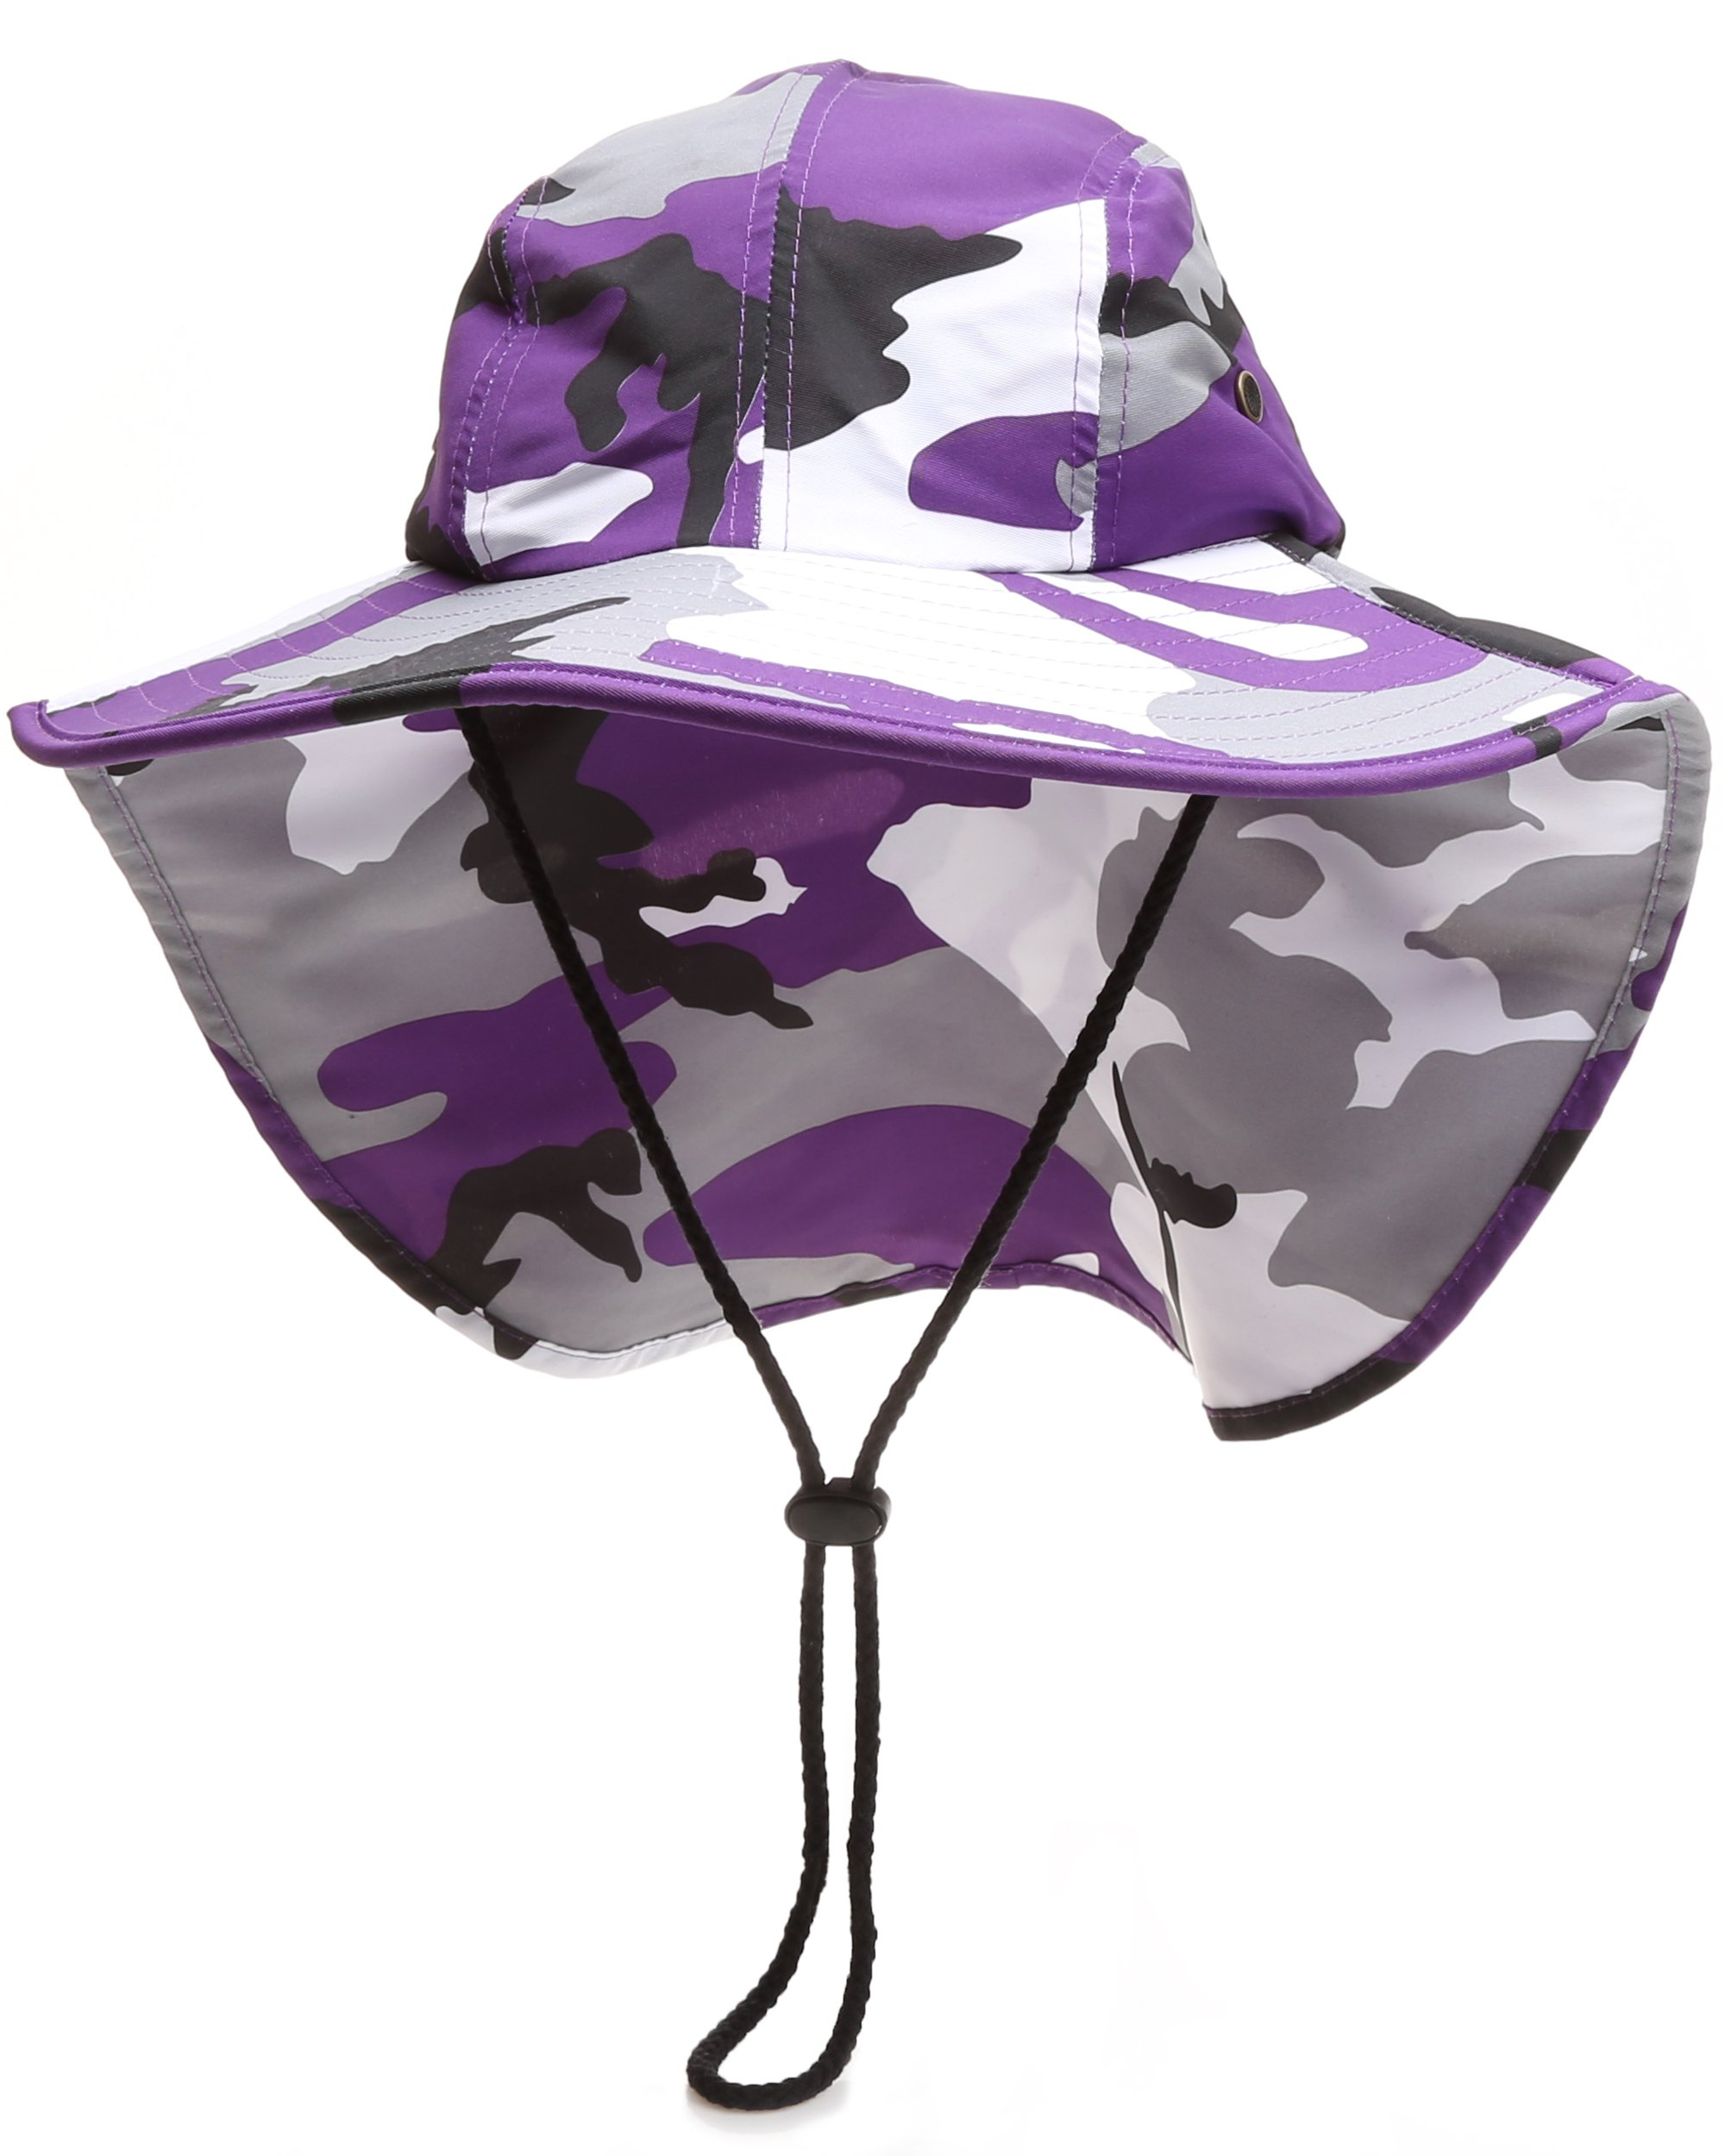 71a9664d1eb1 MIRMARU Outdoor Sun Protection Hunting Hiking Fishing Cap Wide Brim hat  with Neck Flap (PurpleCamo,LXL)